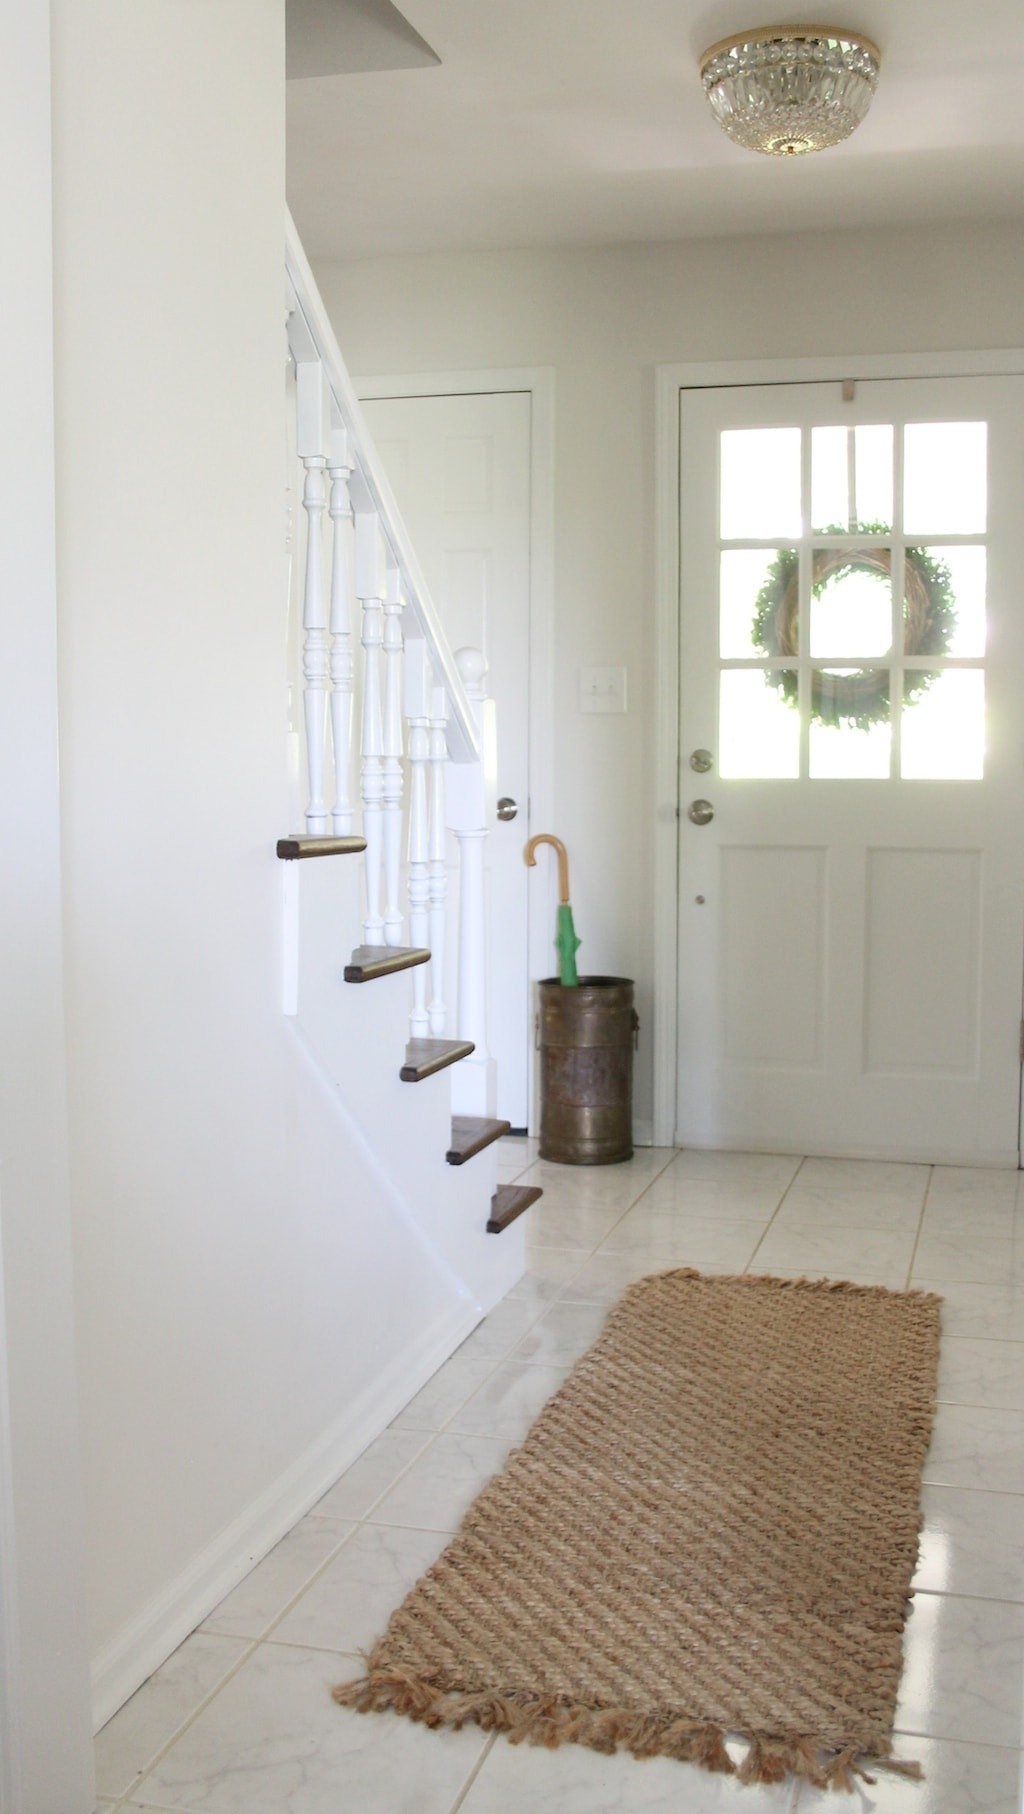 A white entry with a front door with window panes to add light to a room.